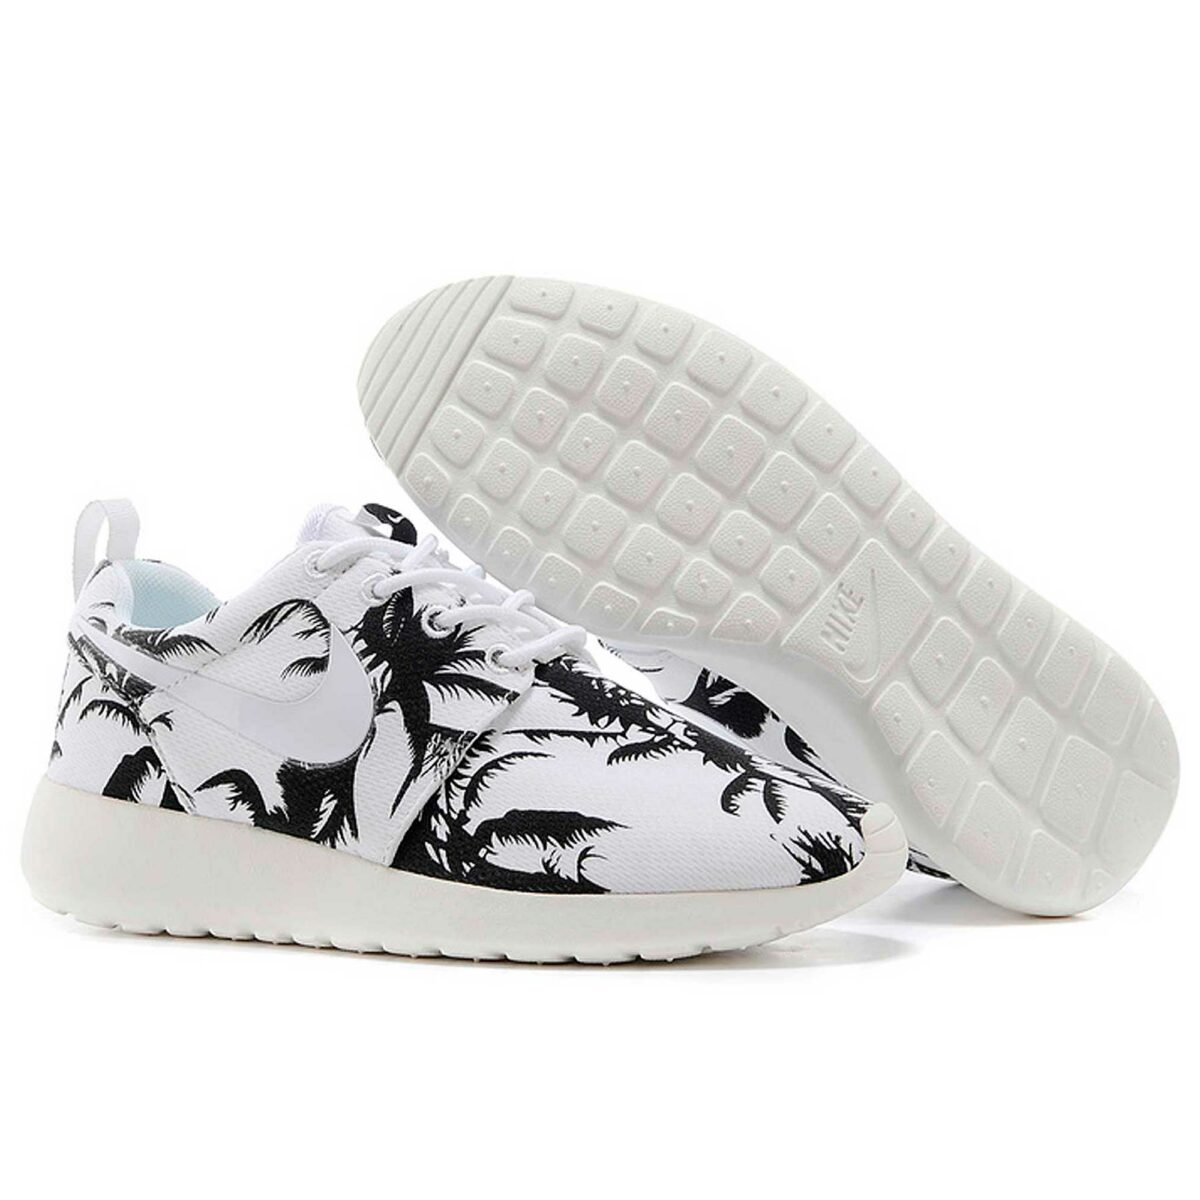 nike roshe run palm trees 511882_118 купить